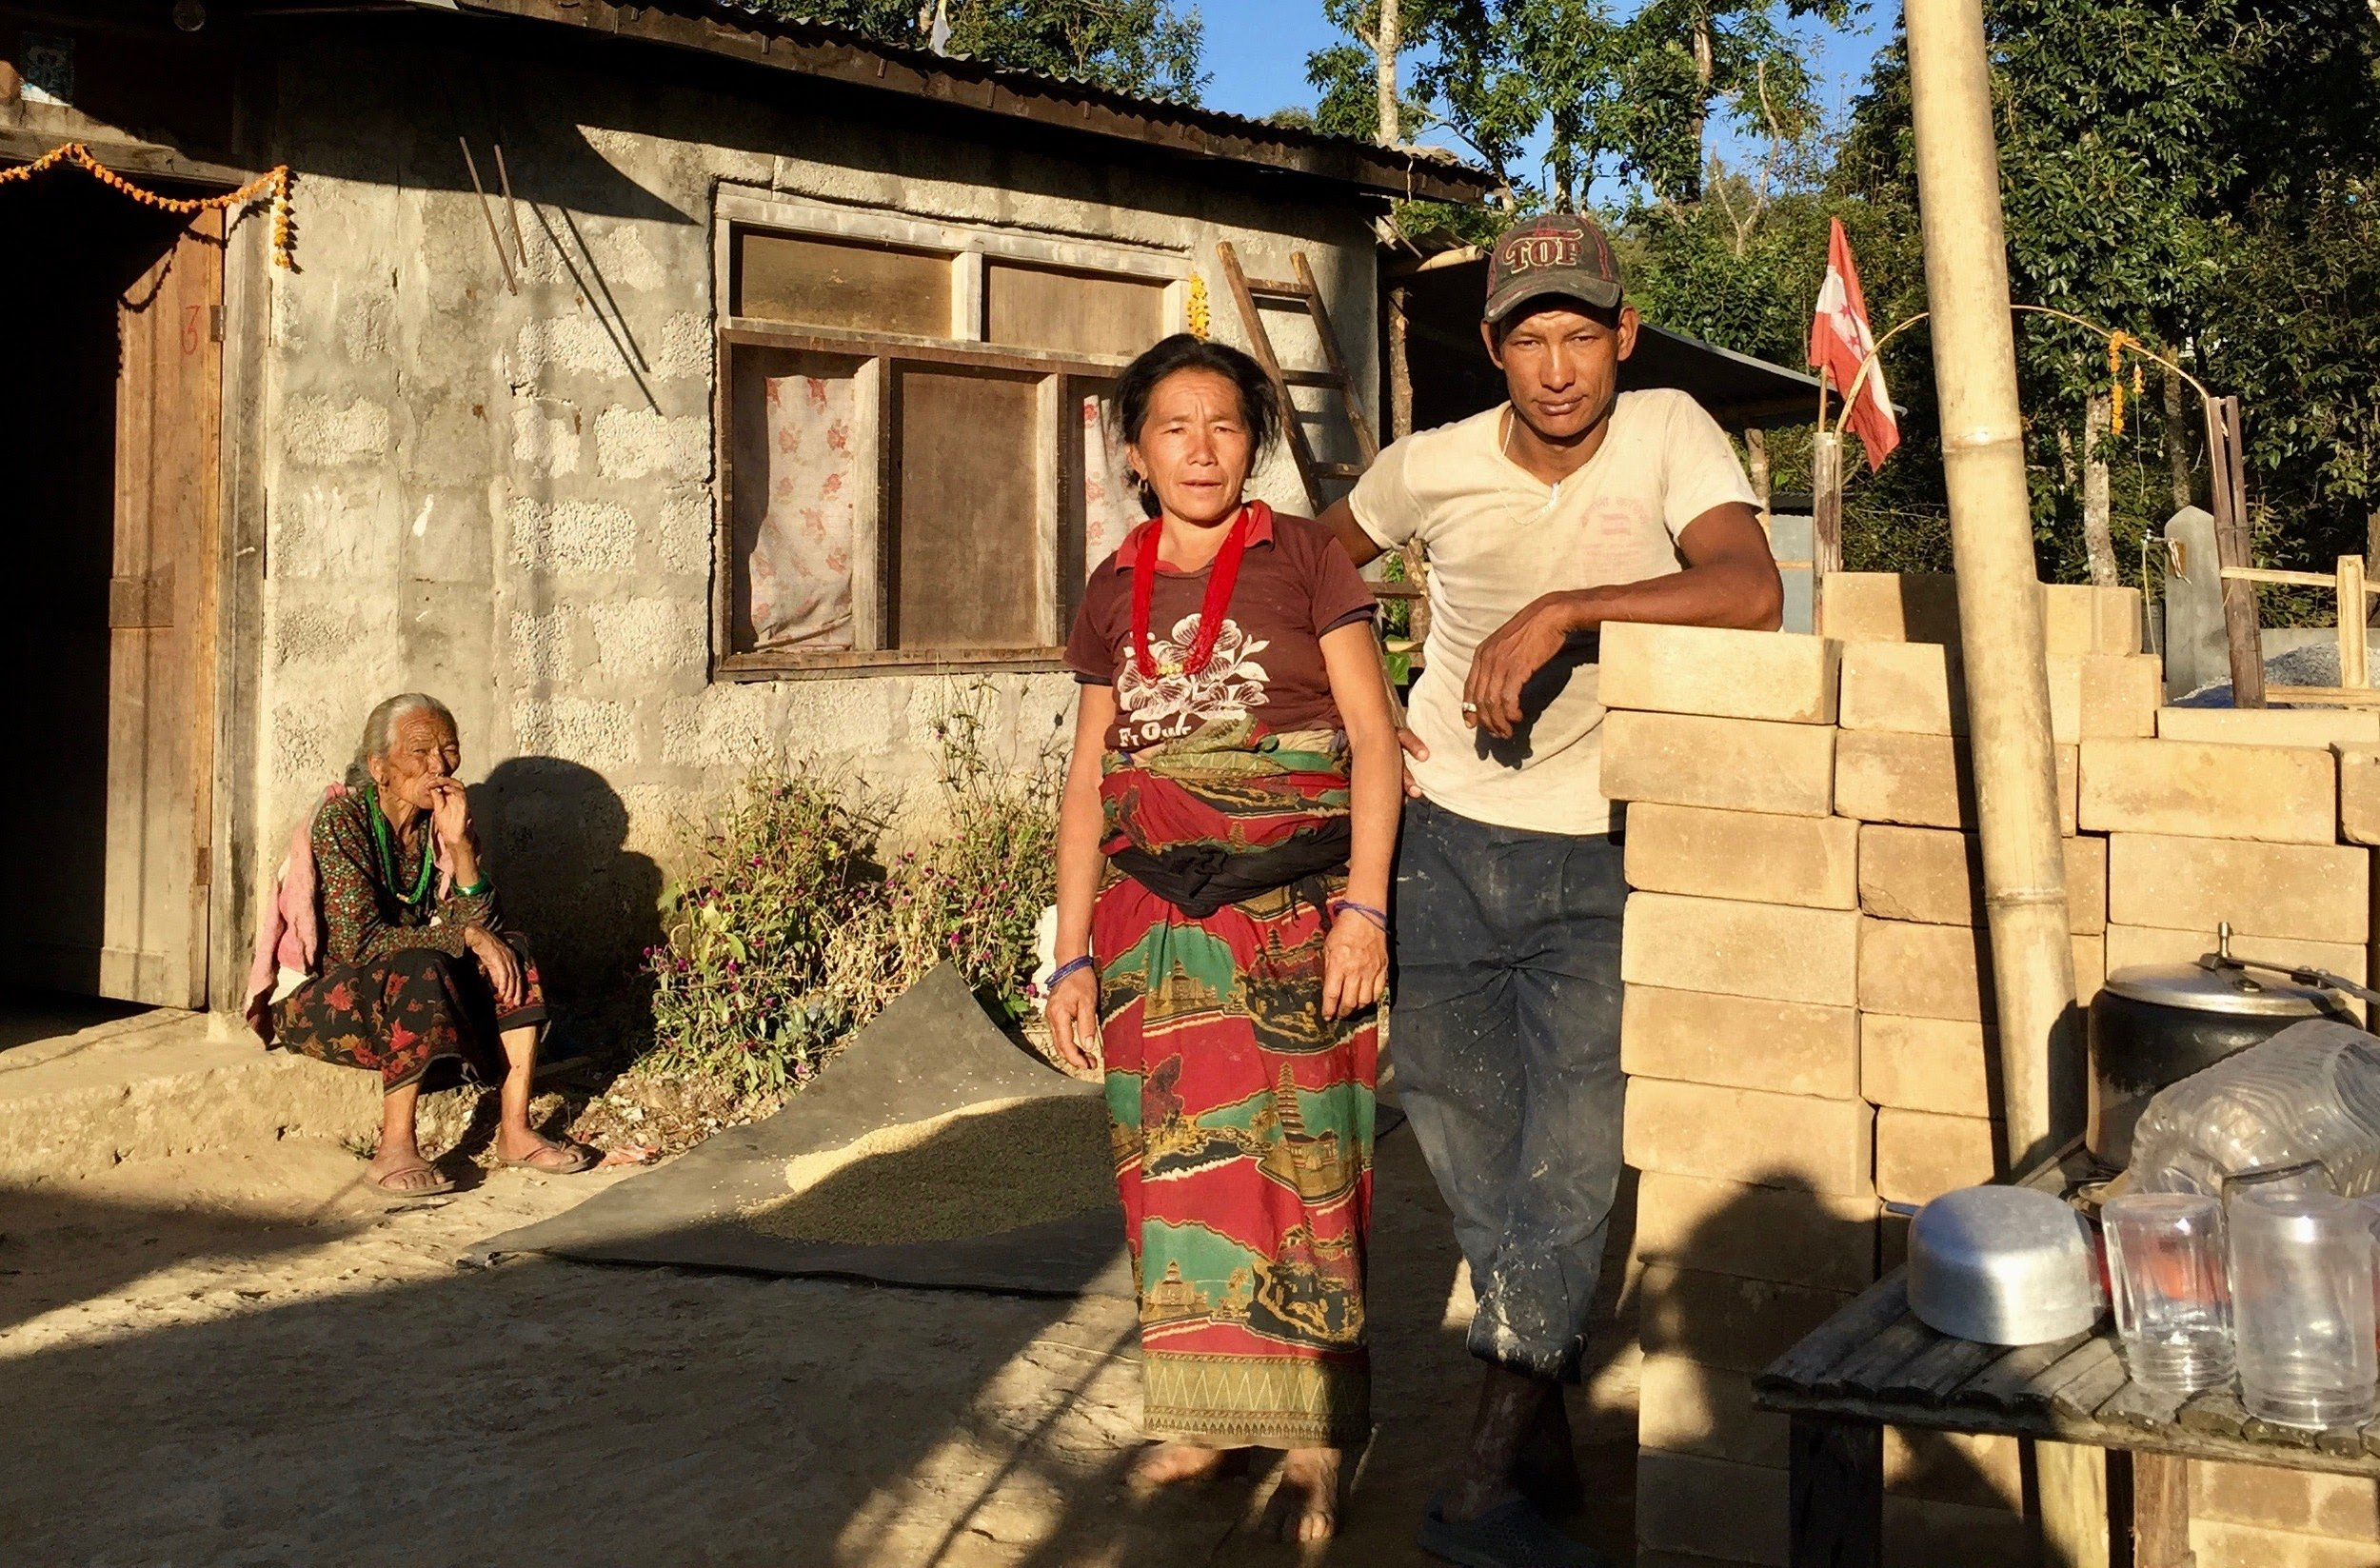 Photo 5: The first brick purchase of Season 3! Prem Bahadur Tamang and his wife stand proudly next to their CSEBs. In the 2015 earthquake, their two-story stone structure fell. Now, they will use these bricks to build their new home, beautiful and earthquake safe. Our hope is that Conscious Impact can support at least 20 other families to have the same opportunity.